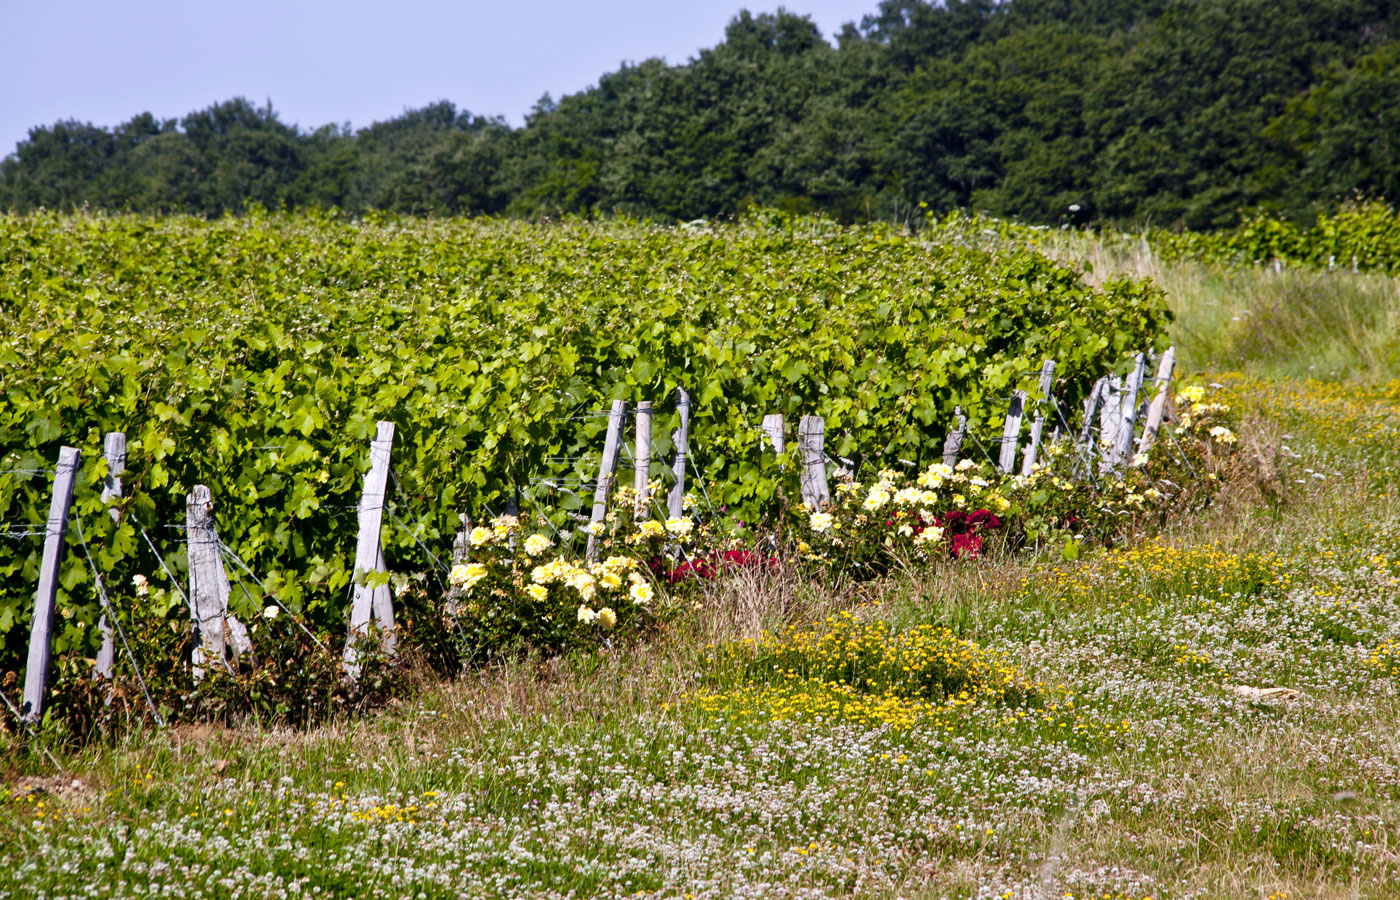 Vineyard rows with roses.jpg